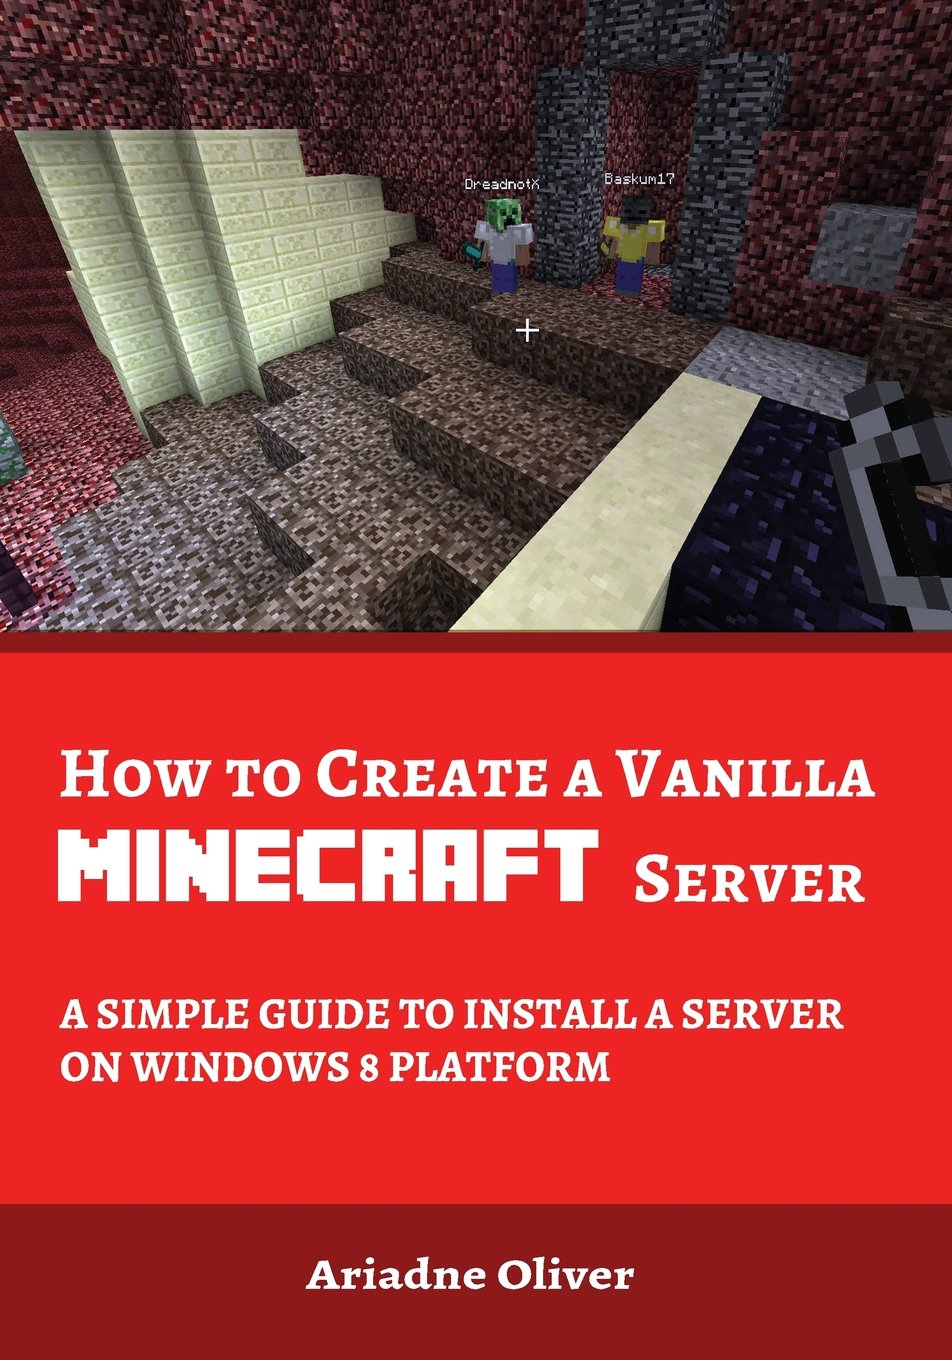 How to Create a Vanilla Minecraft Server: A Simple Guide to